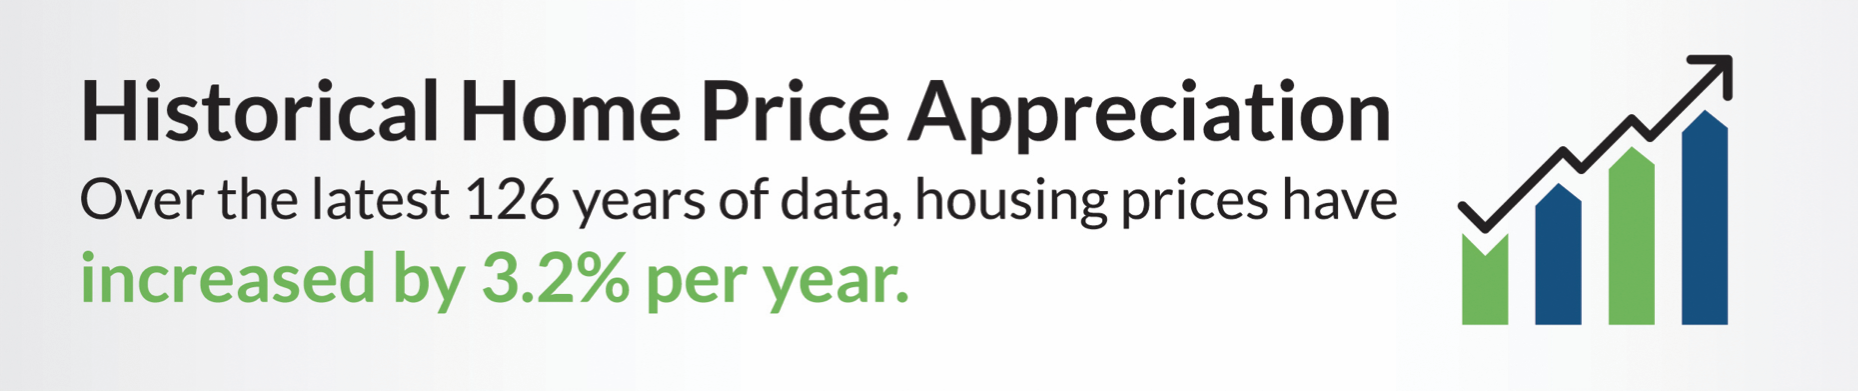 A graphic with an upward moving bar graph that states that housing prices have increased by 3.2% per year.